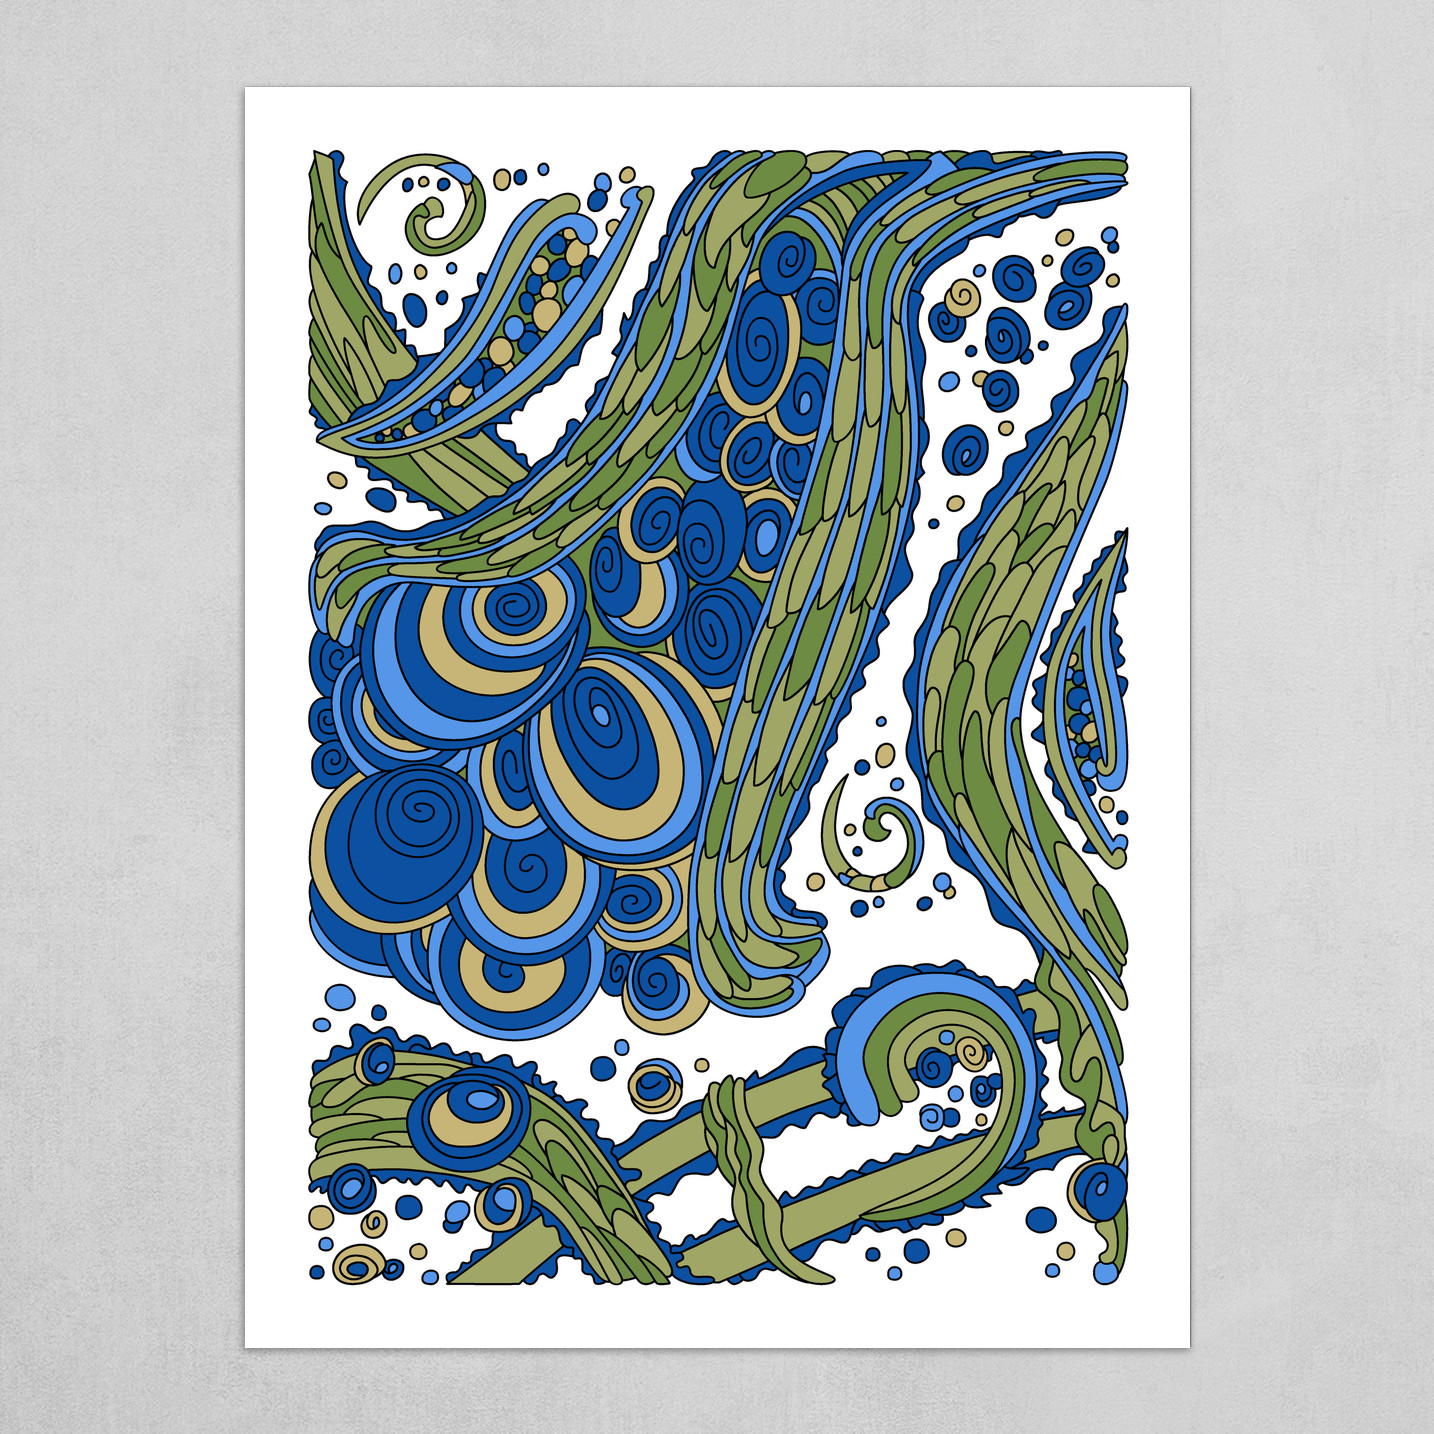 Wandering Abstract Line Art 38: Blue